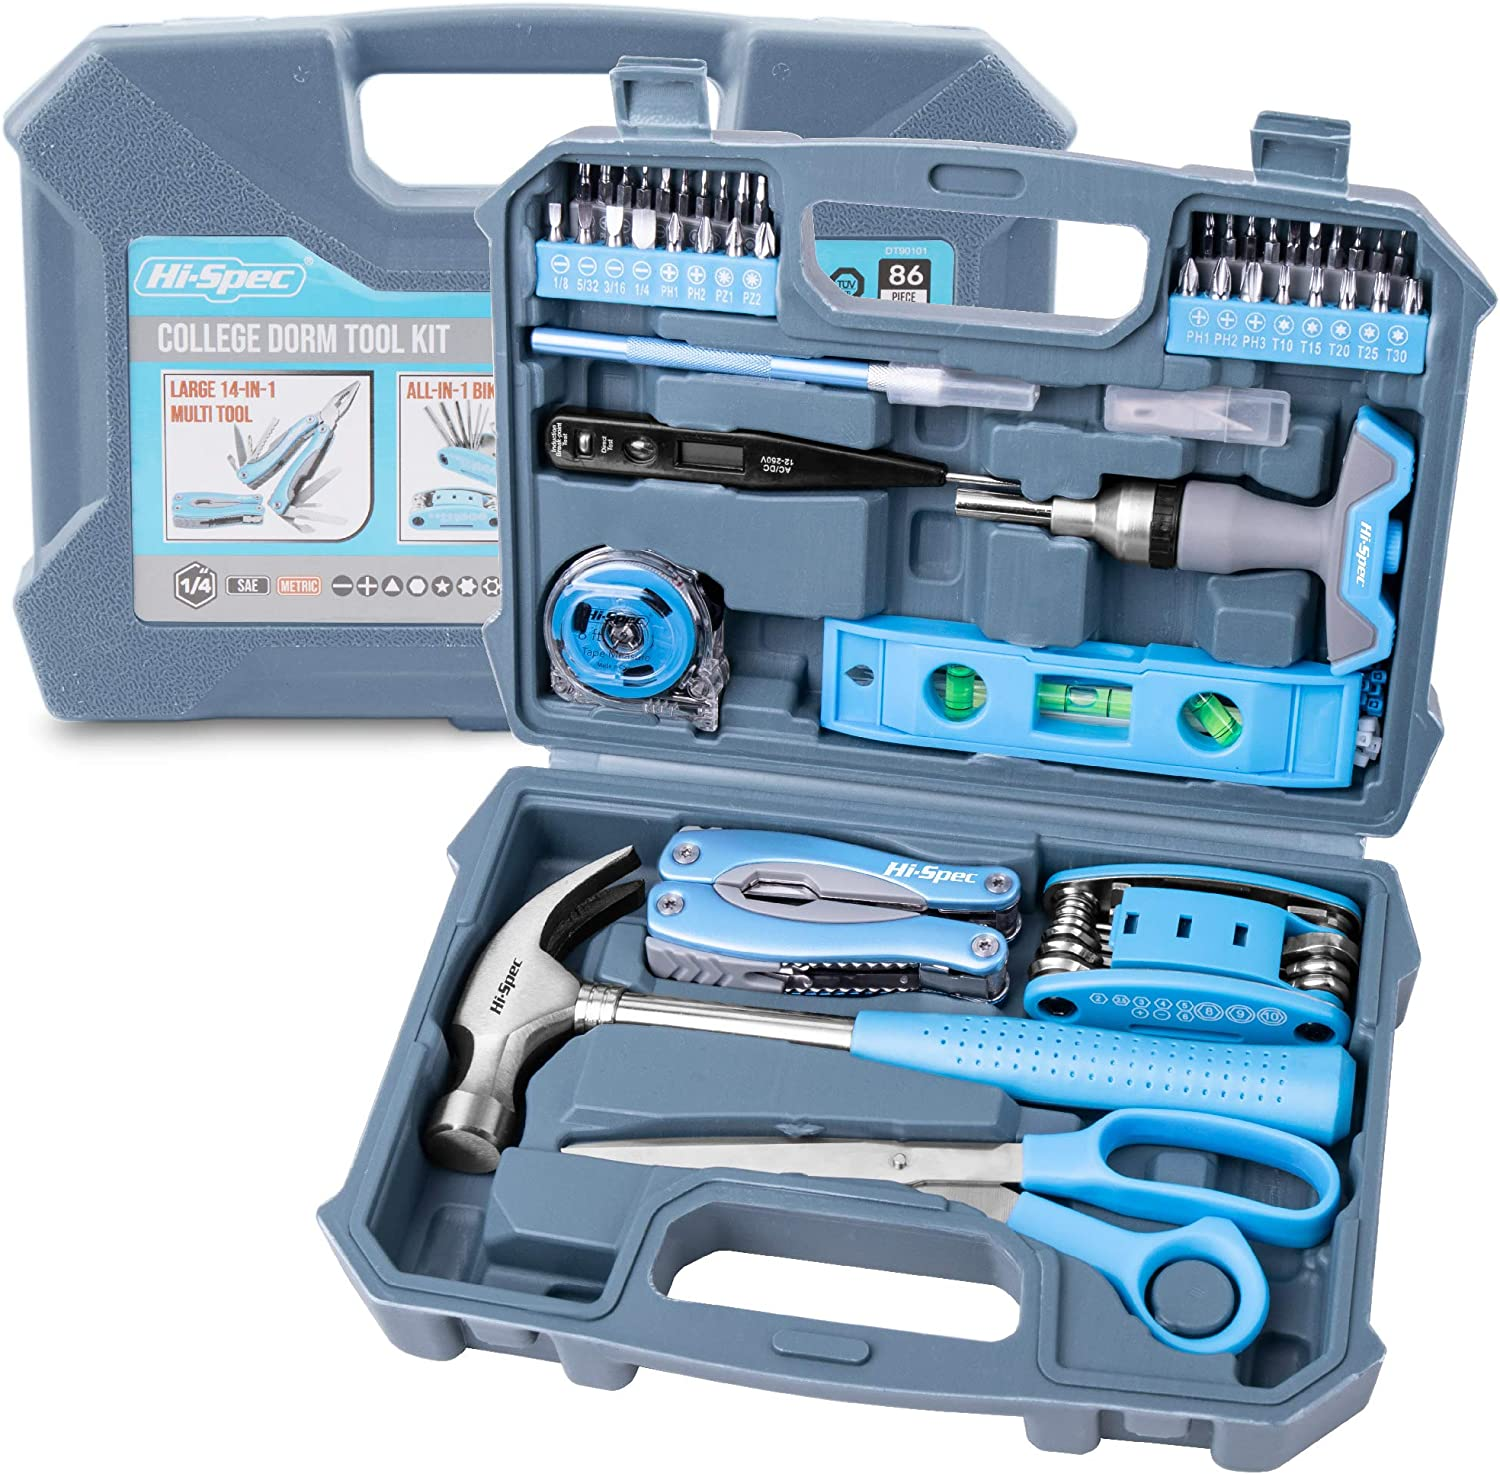 Hi-Spec 86 Piece College Dorm Household Tool Kit with 2-in-1 T Handle Ratcheting Bit Driver, Screw Bits, Bike Repair Multitool, Camping Multi Pliers for University, Homeowners, Starter Tool Set